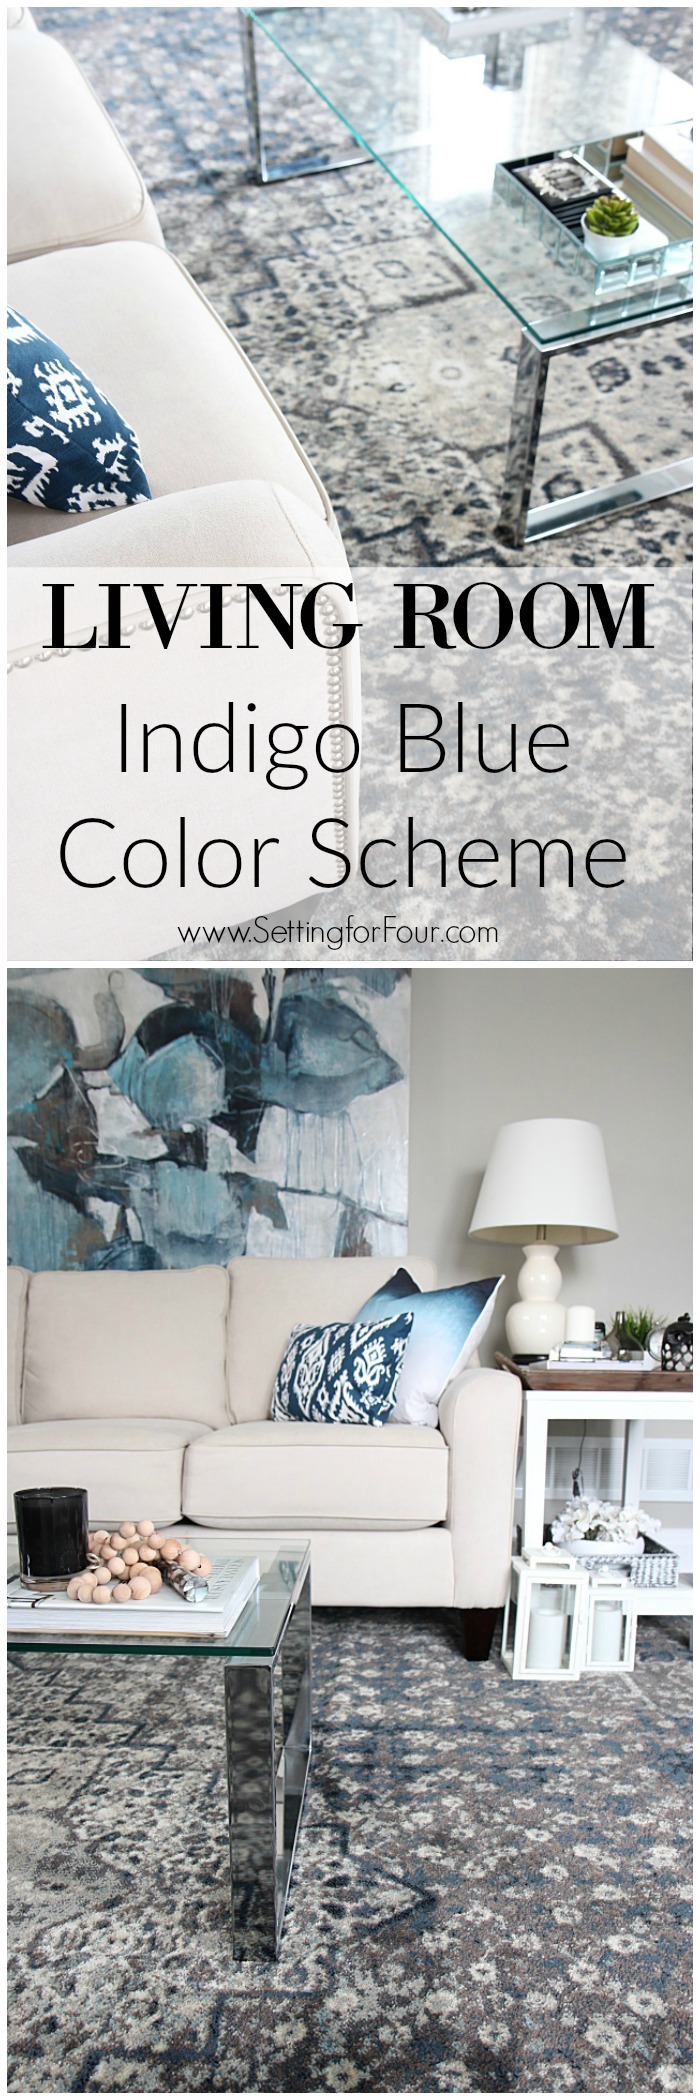 An Indigo Blue Color Scheme For Our Living Room Setting